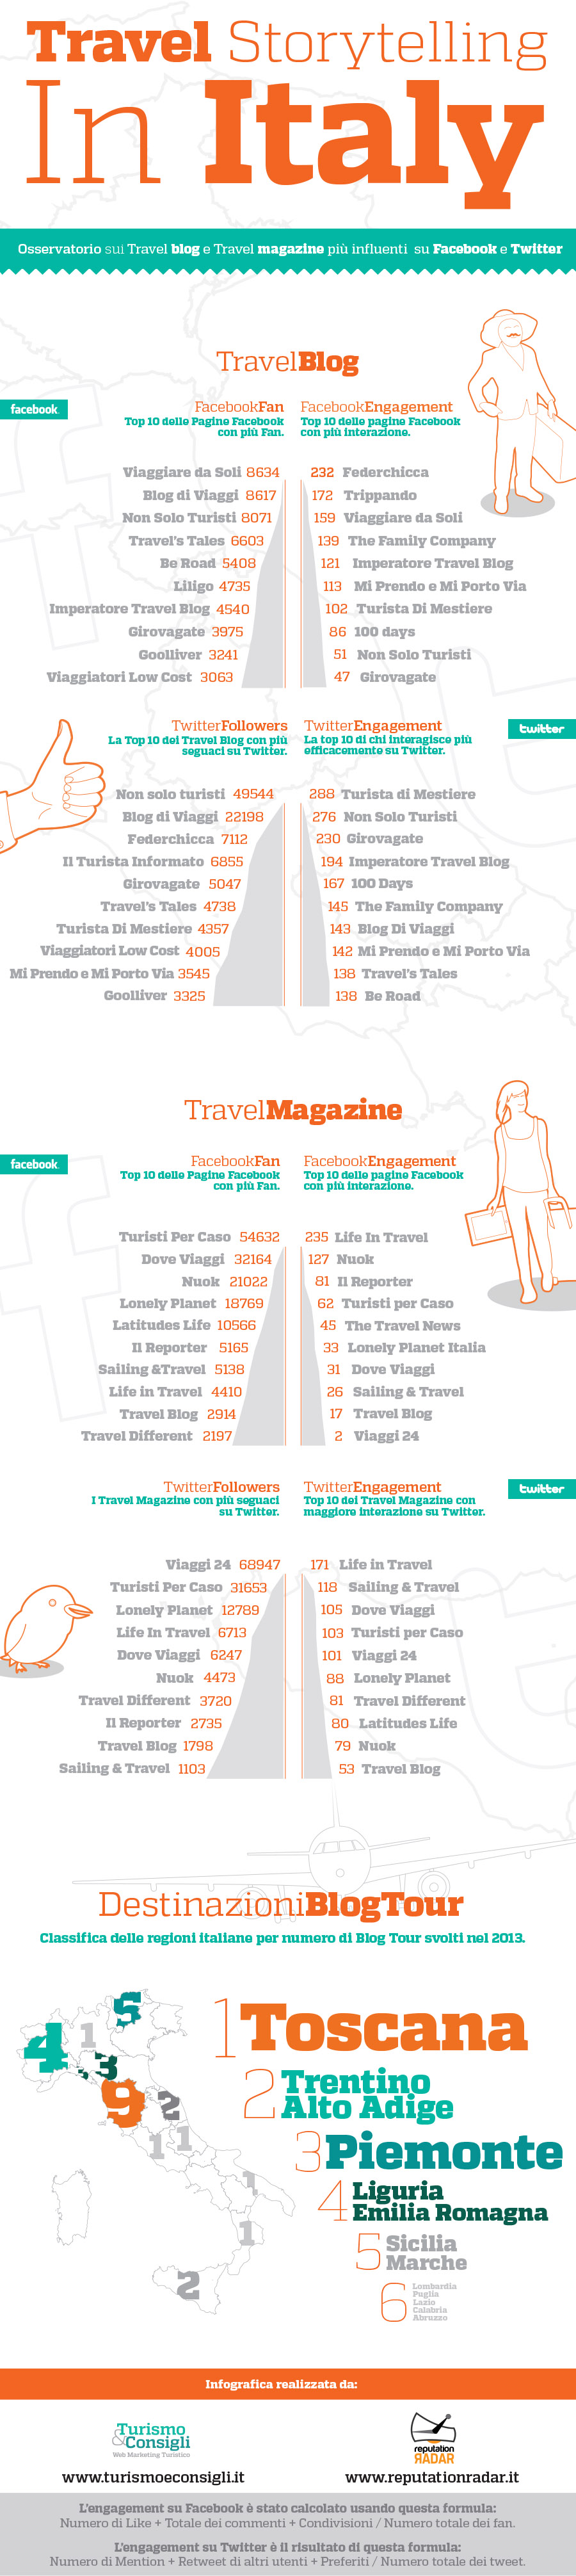 travelblog_infografica-low